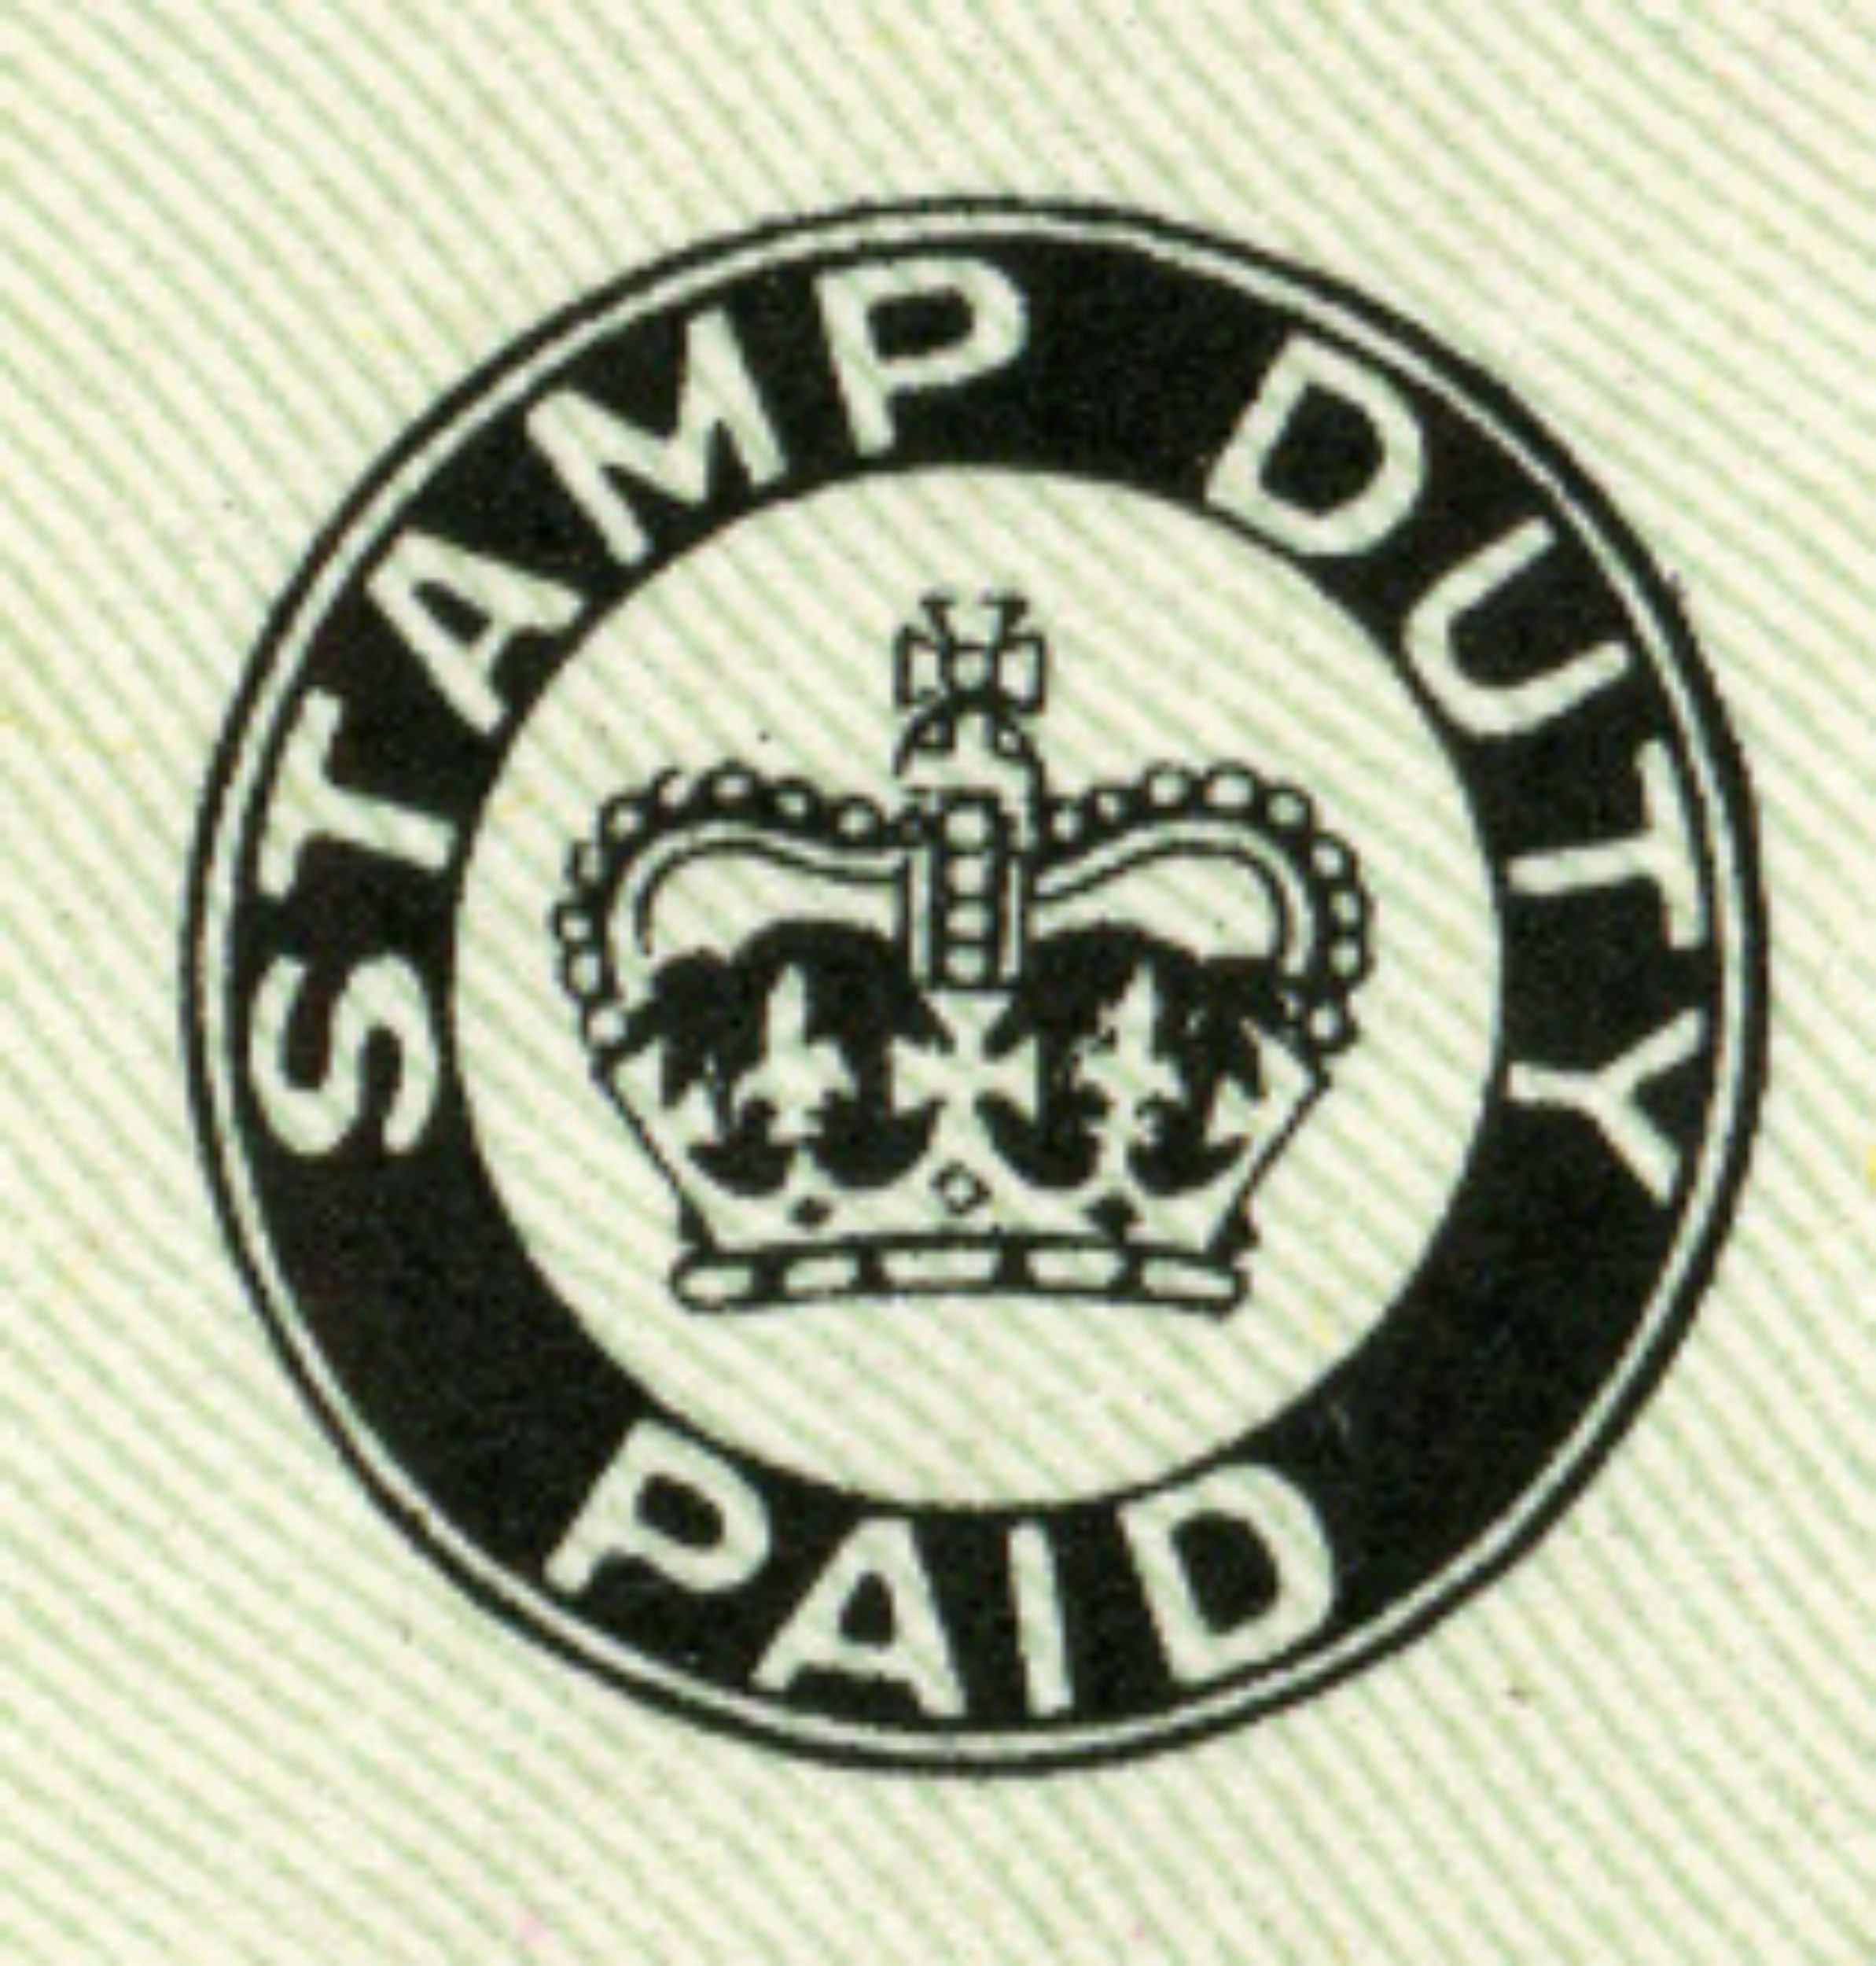 stamp duty - photo #16